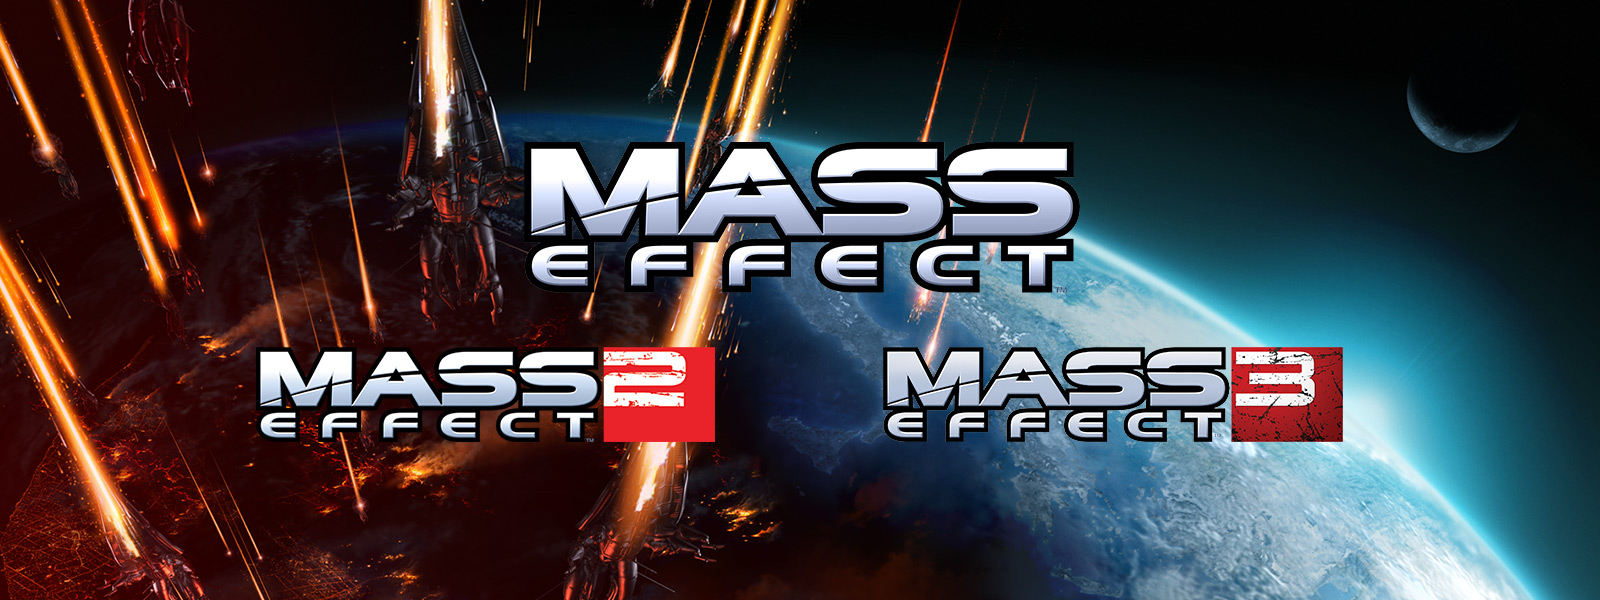 Mass Effect Backward Compatibility: Mass Effect, Mass Effect 2 and Mass Effect 3, background shot of planet with ships aiming towards it